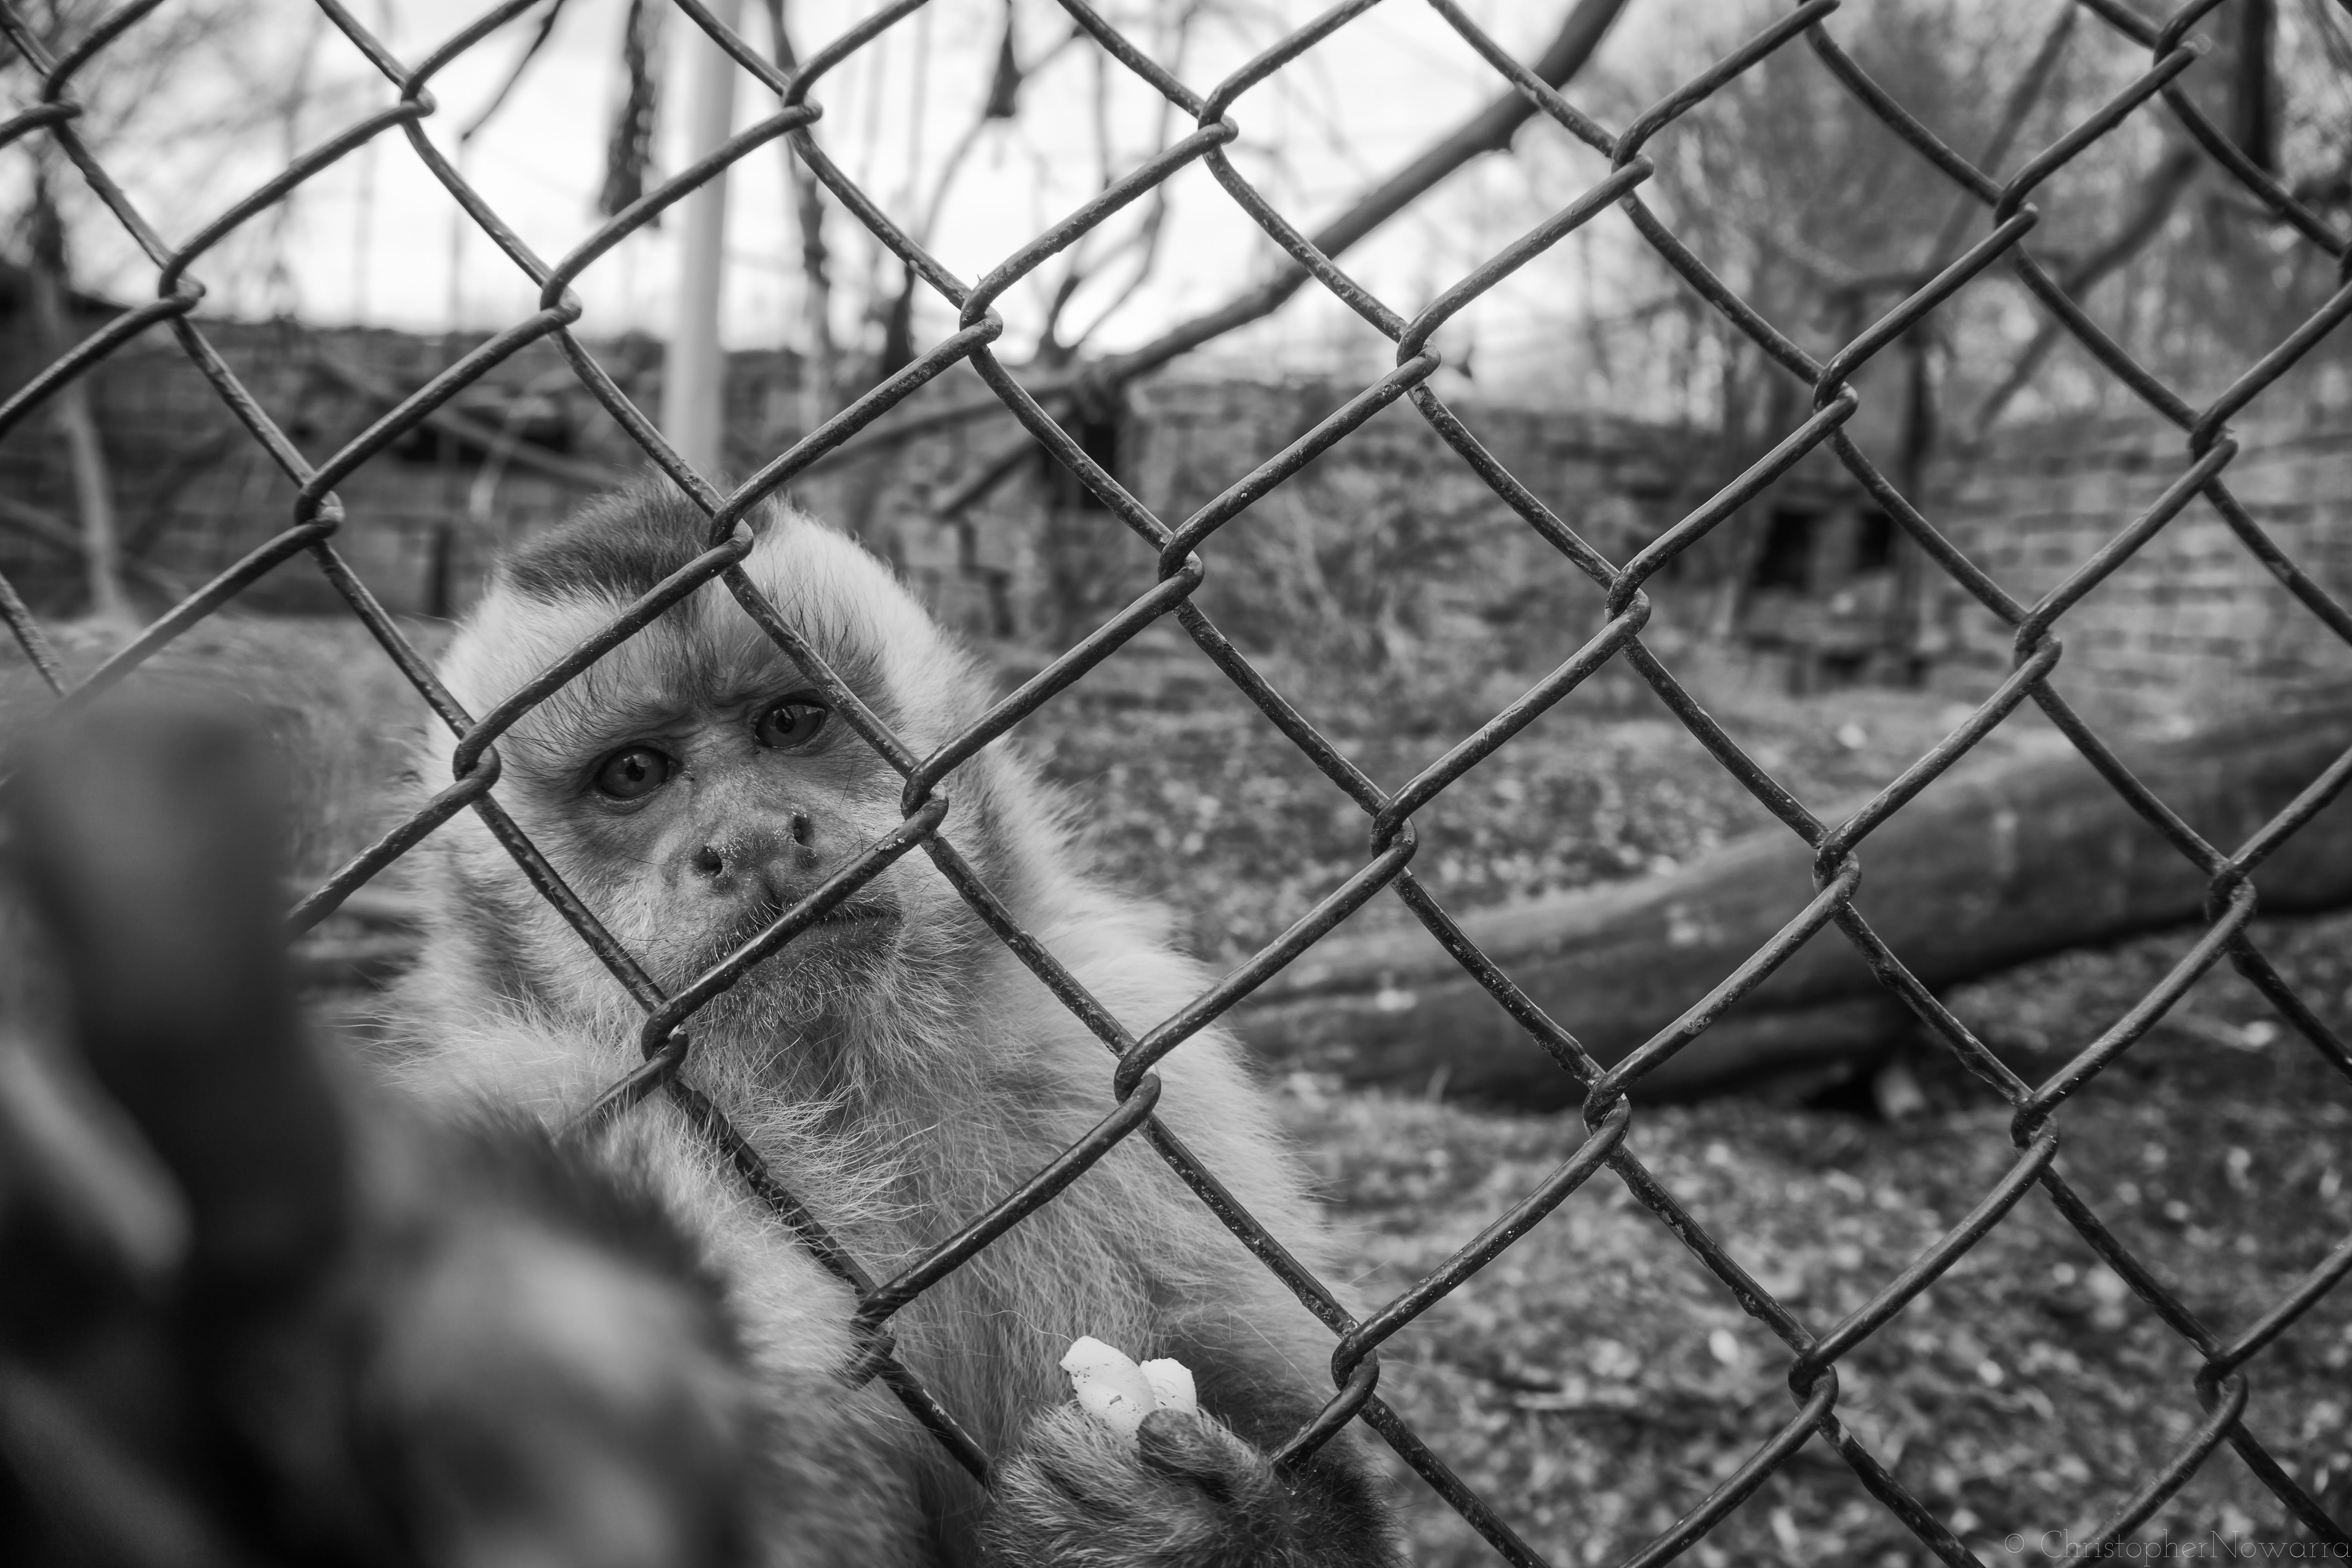 Monkey Behind Wire Mesh Fence